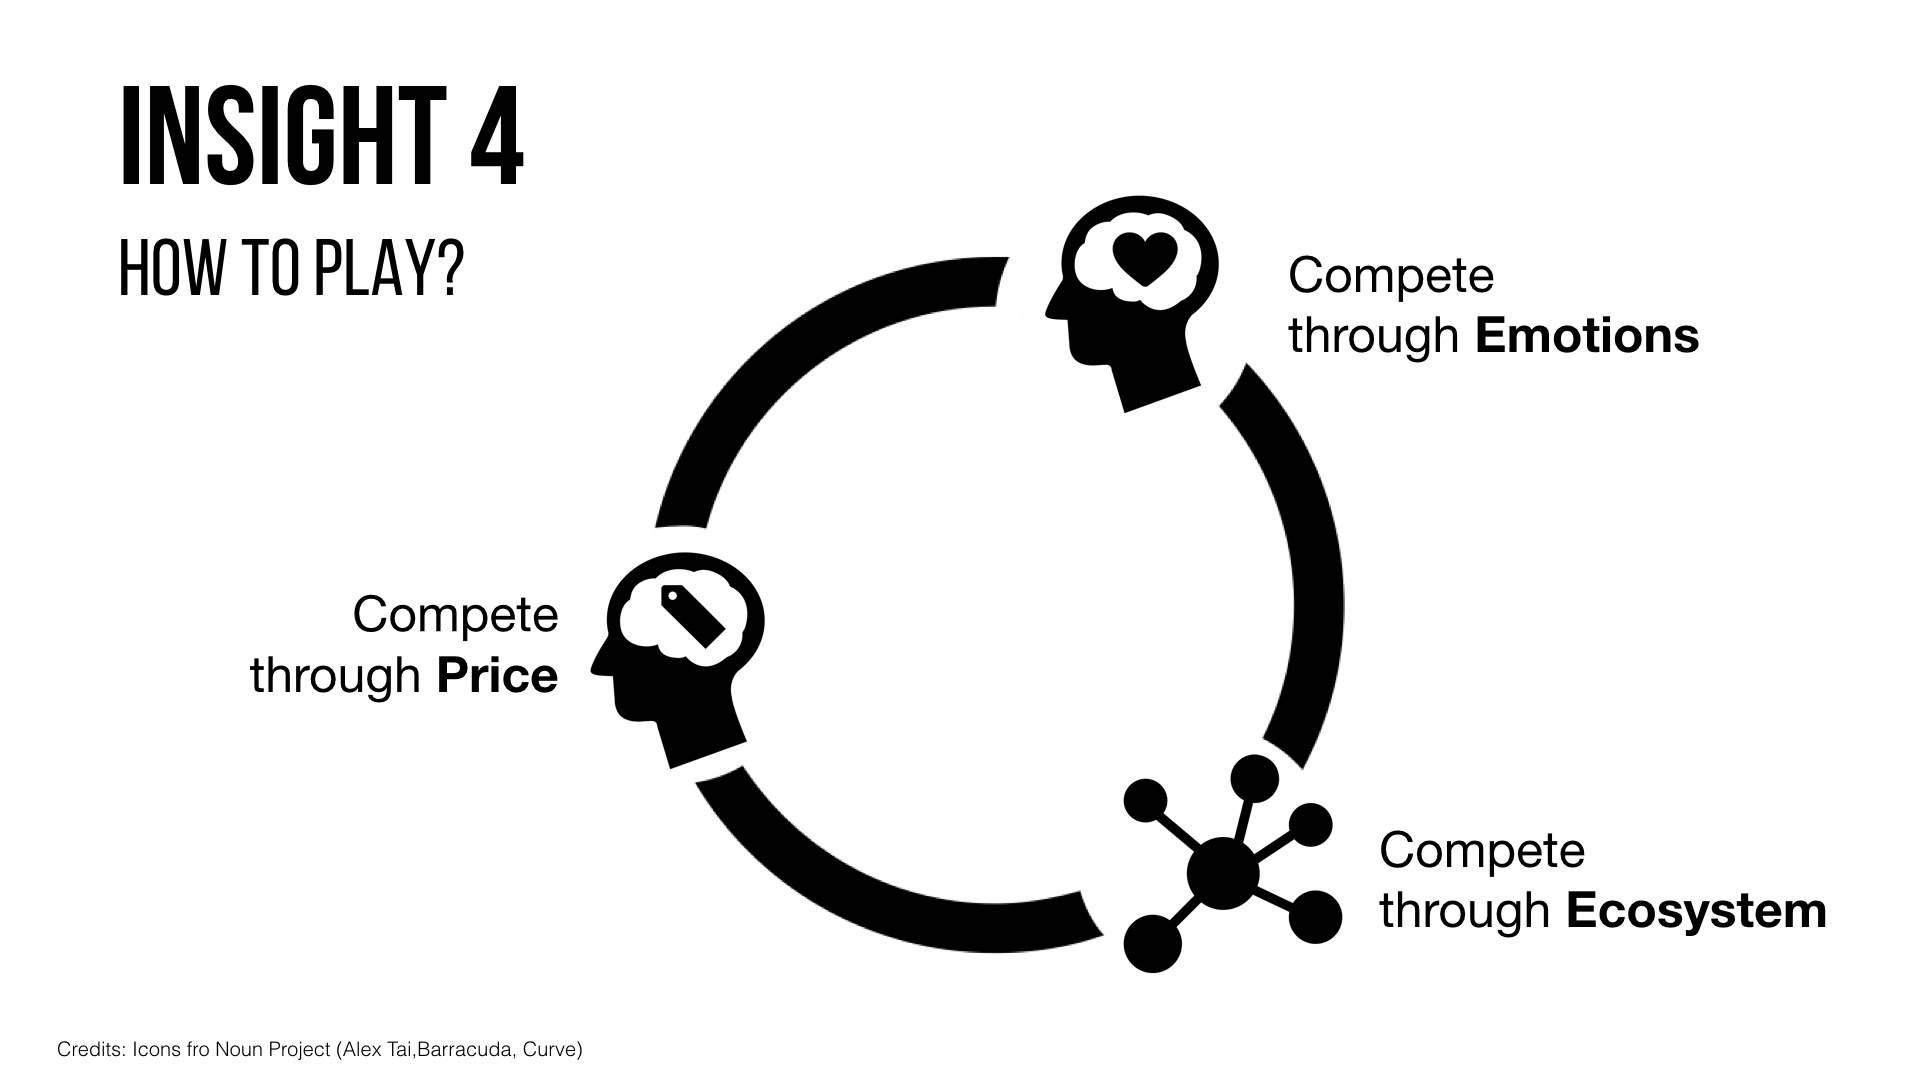 Growth in a digital World - How to Play? Price, Emotions, Ecosystem